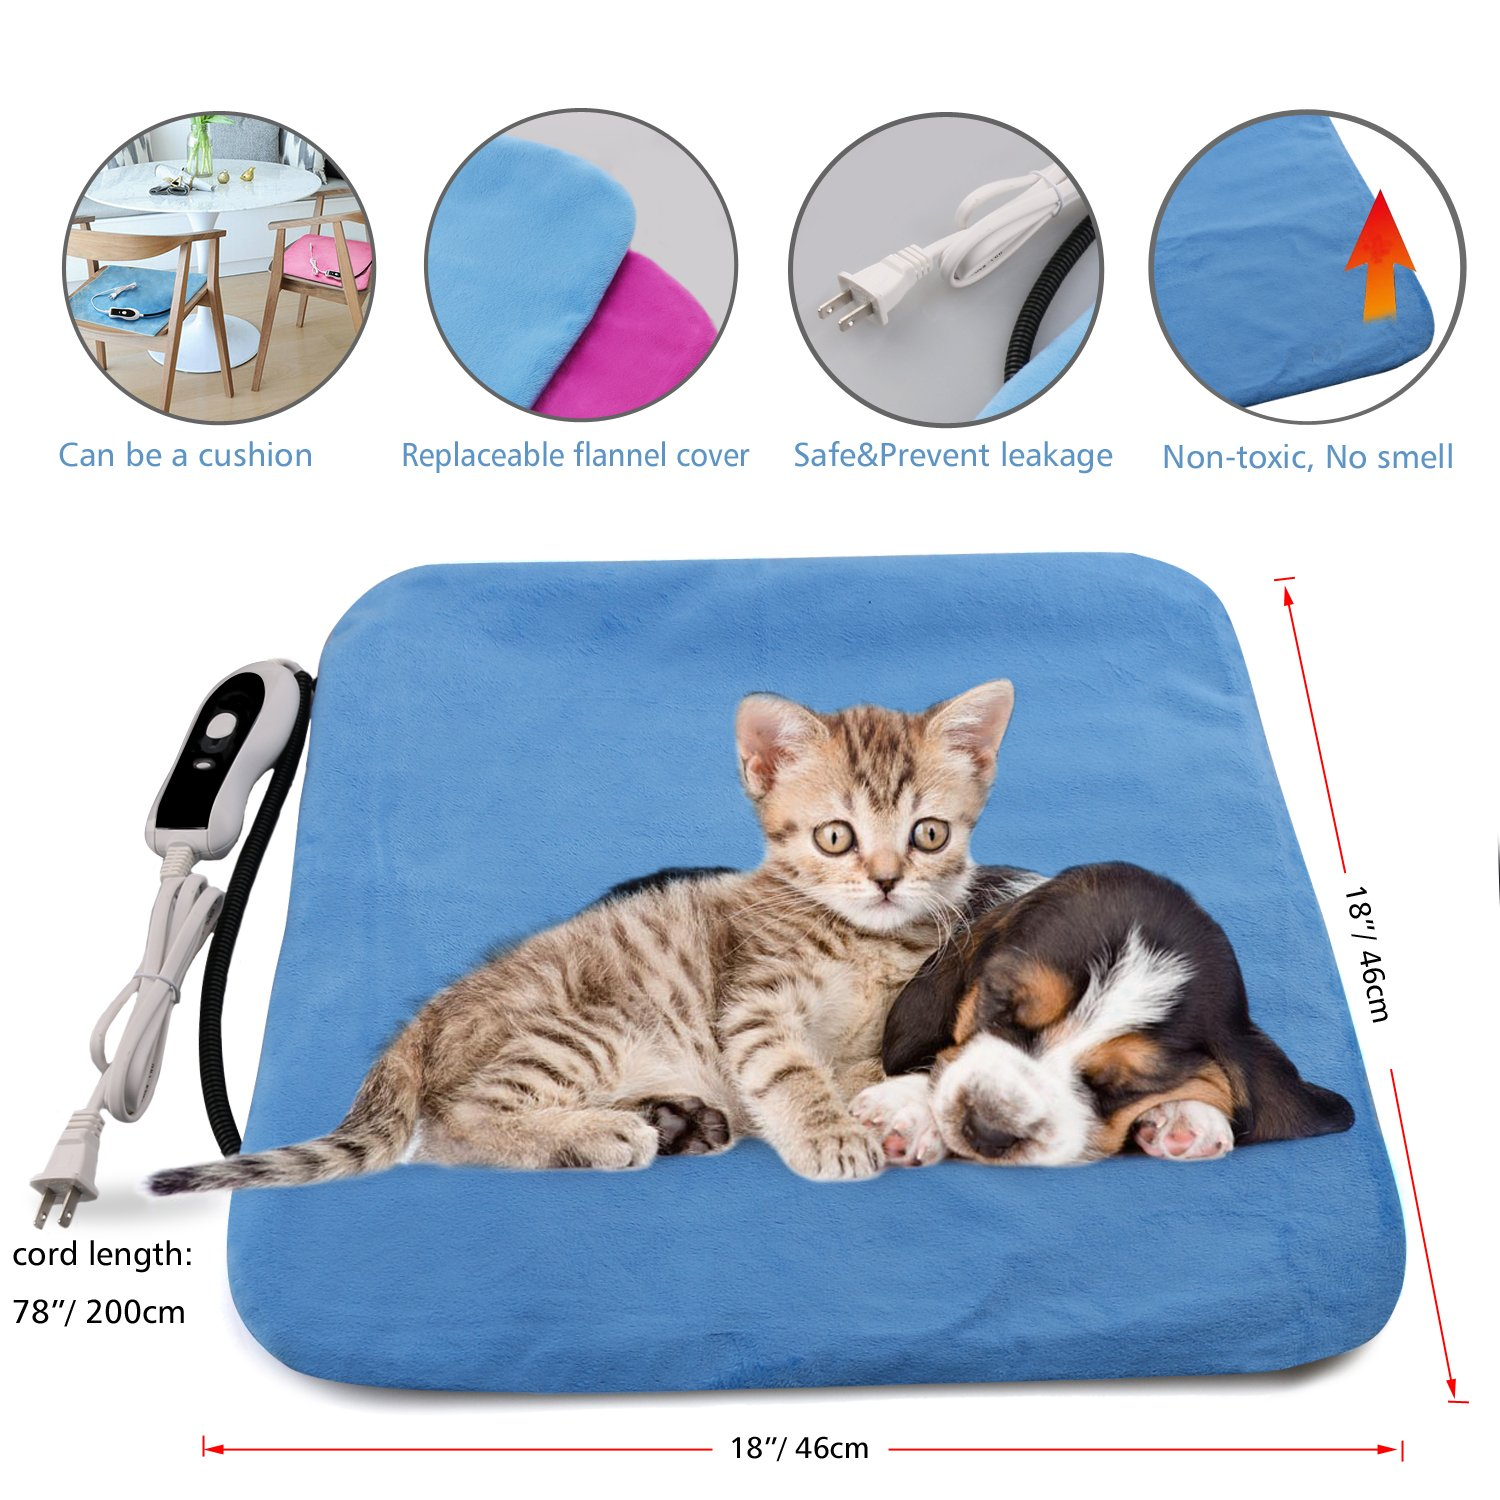 Amazon.com : Pet Heating Pad, Electric Blanket Heating Pad for Dog ...